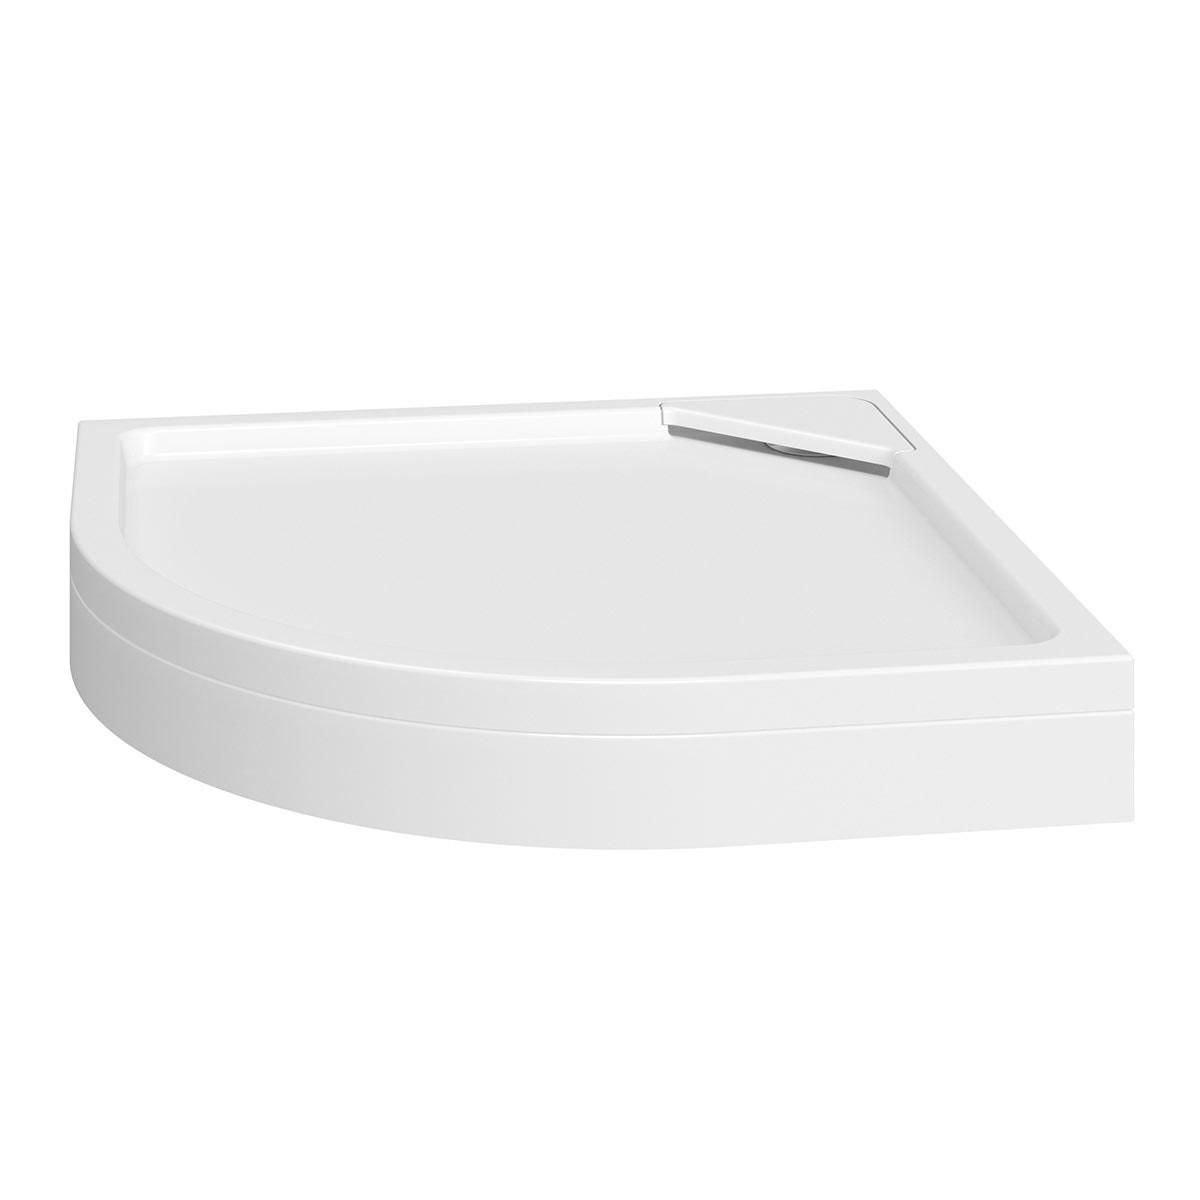 Designer Quadrant Stone Shower Tray Riser Kit 900